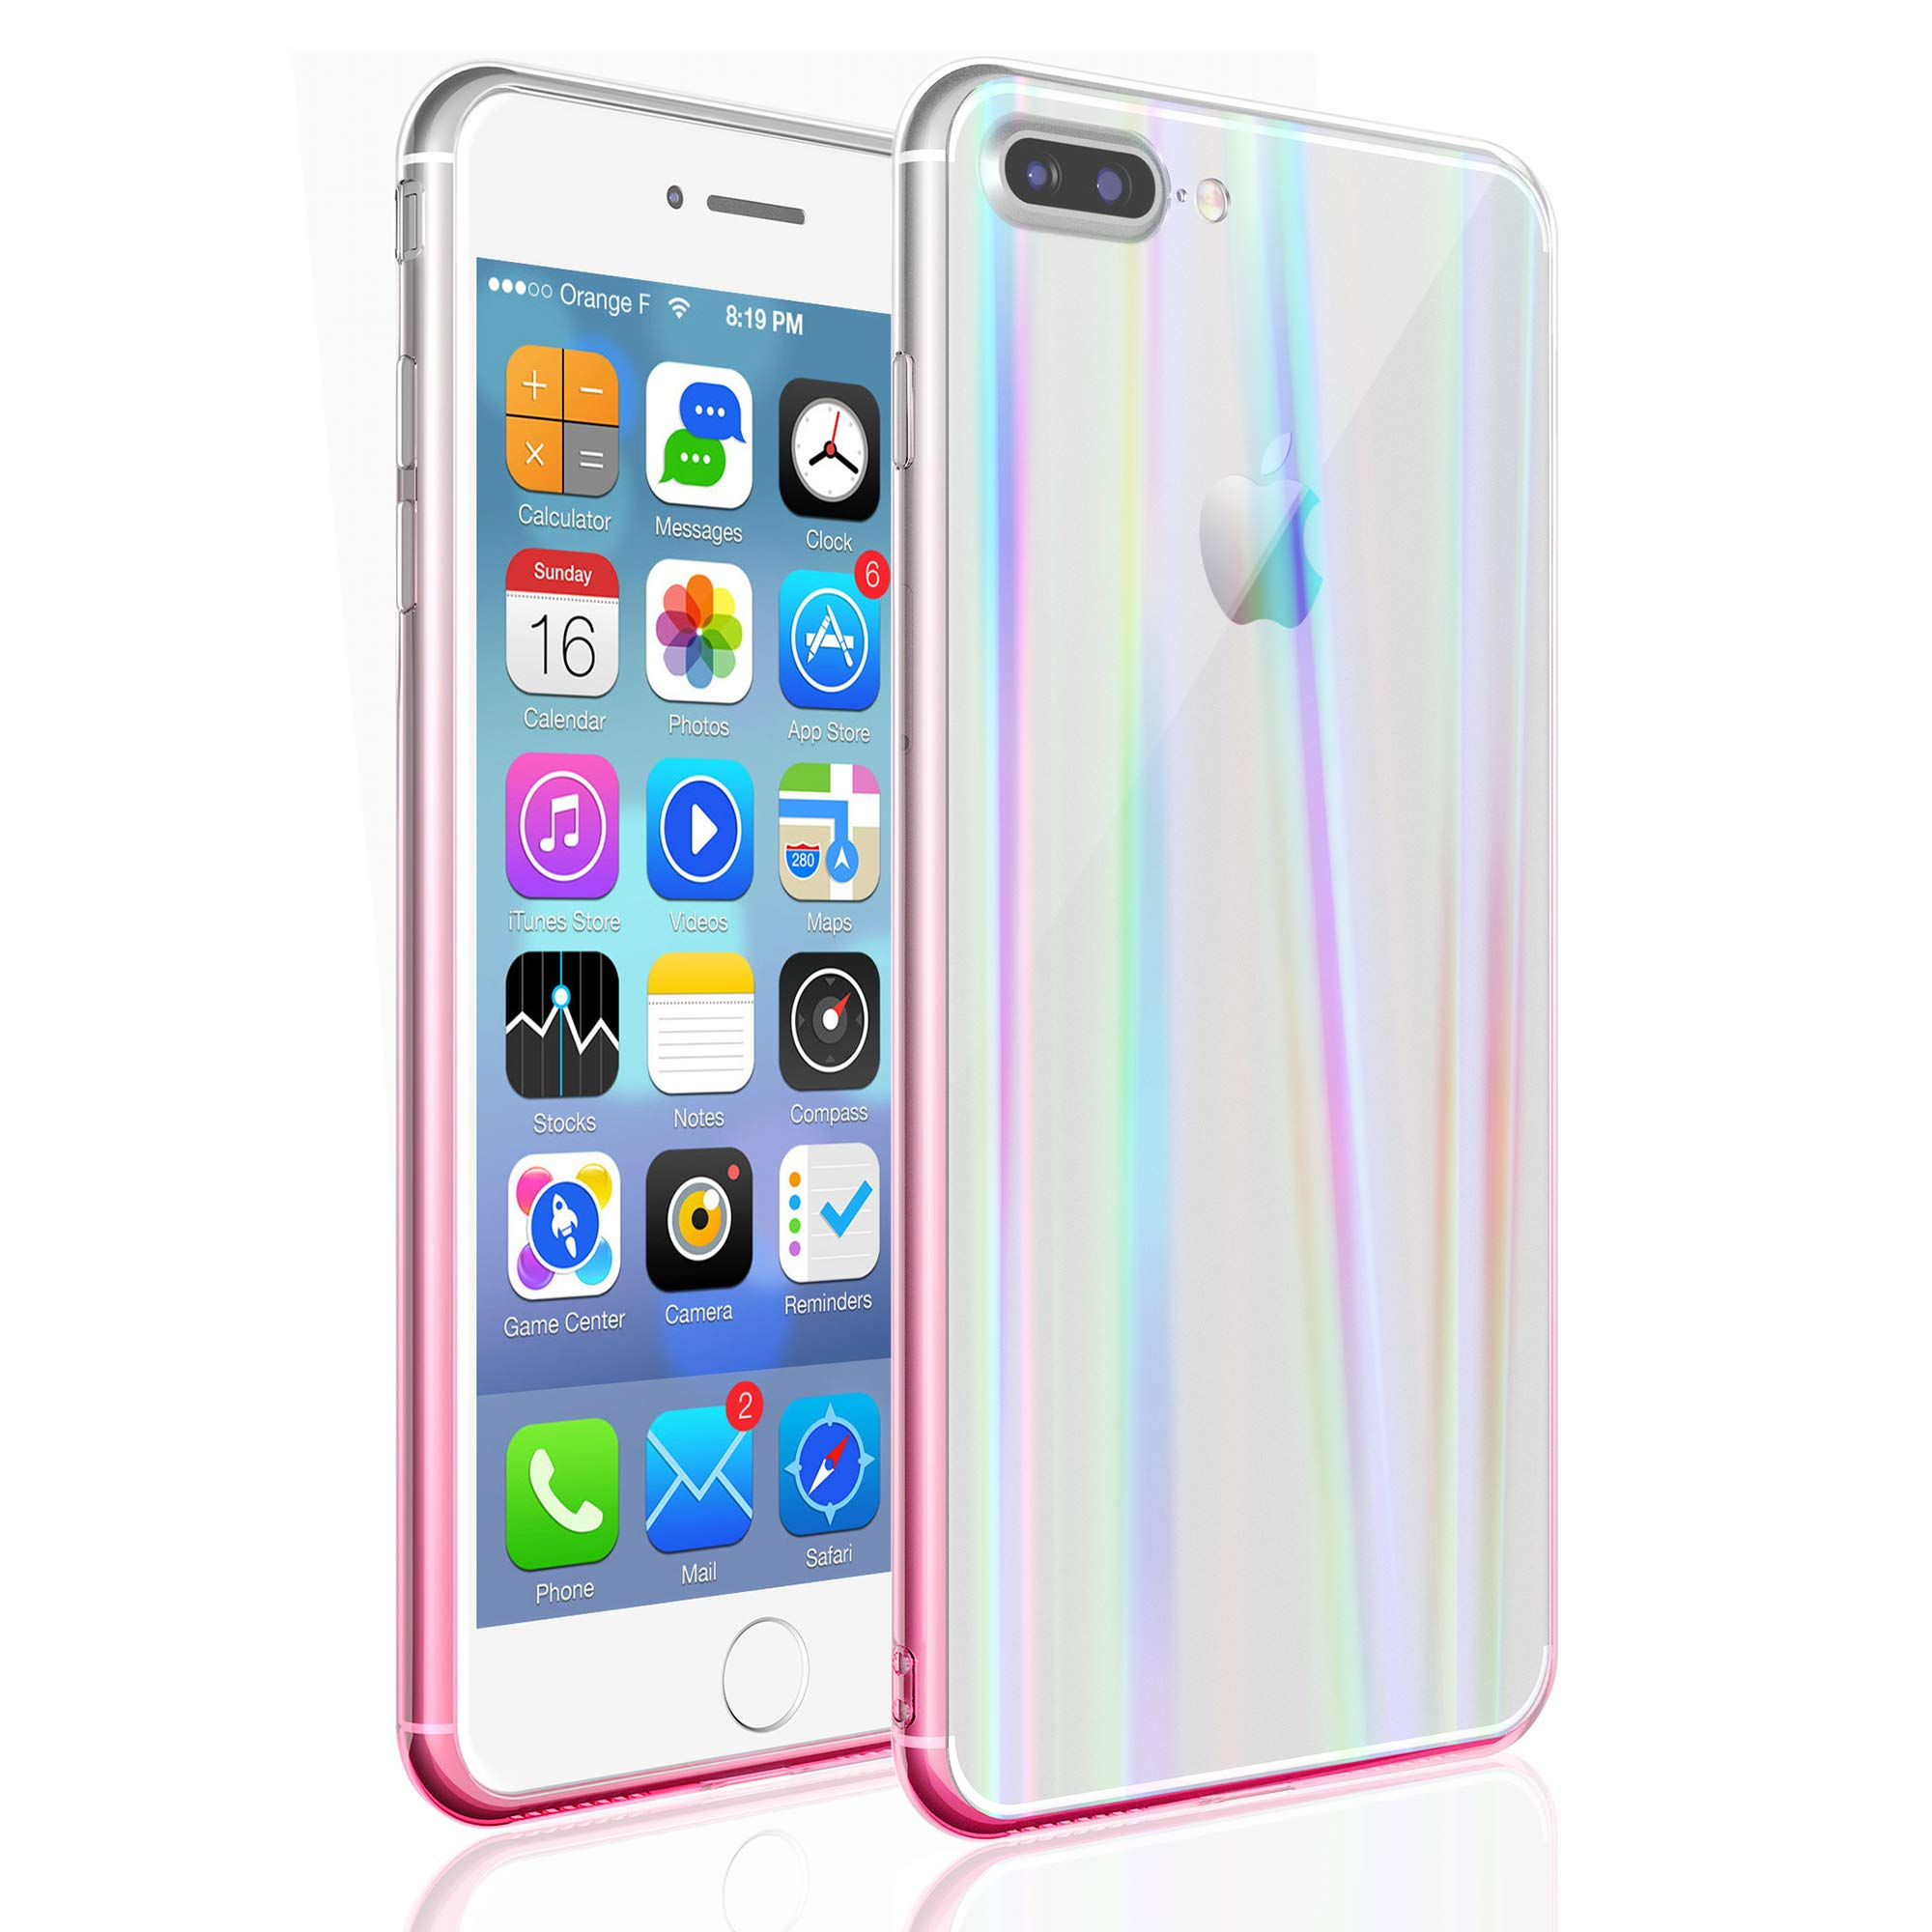 EYZUTAK Transparent Aurora Gradient Color Case for iPhone Xs Max, Ultra Thin Tempered Glass Back Anti-Scratch TPU Bumper Shockproof Protective Case Cover for iPhone Xs Max - Pink